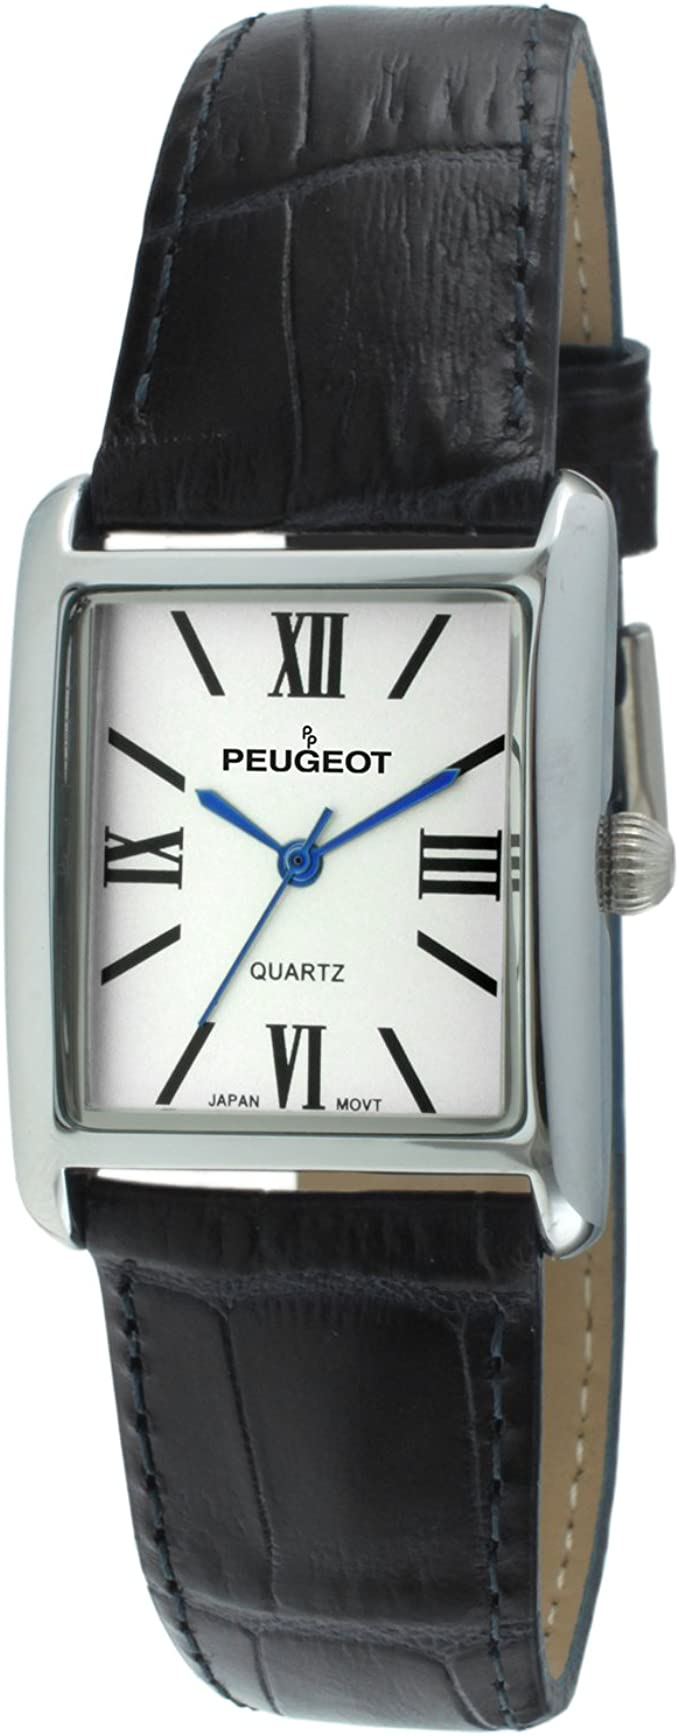 peugeot watch review